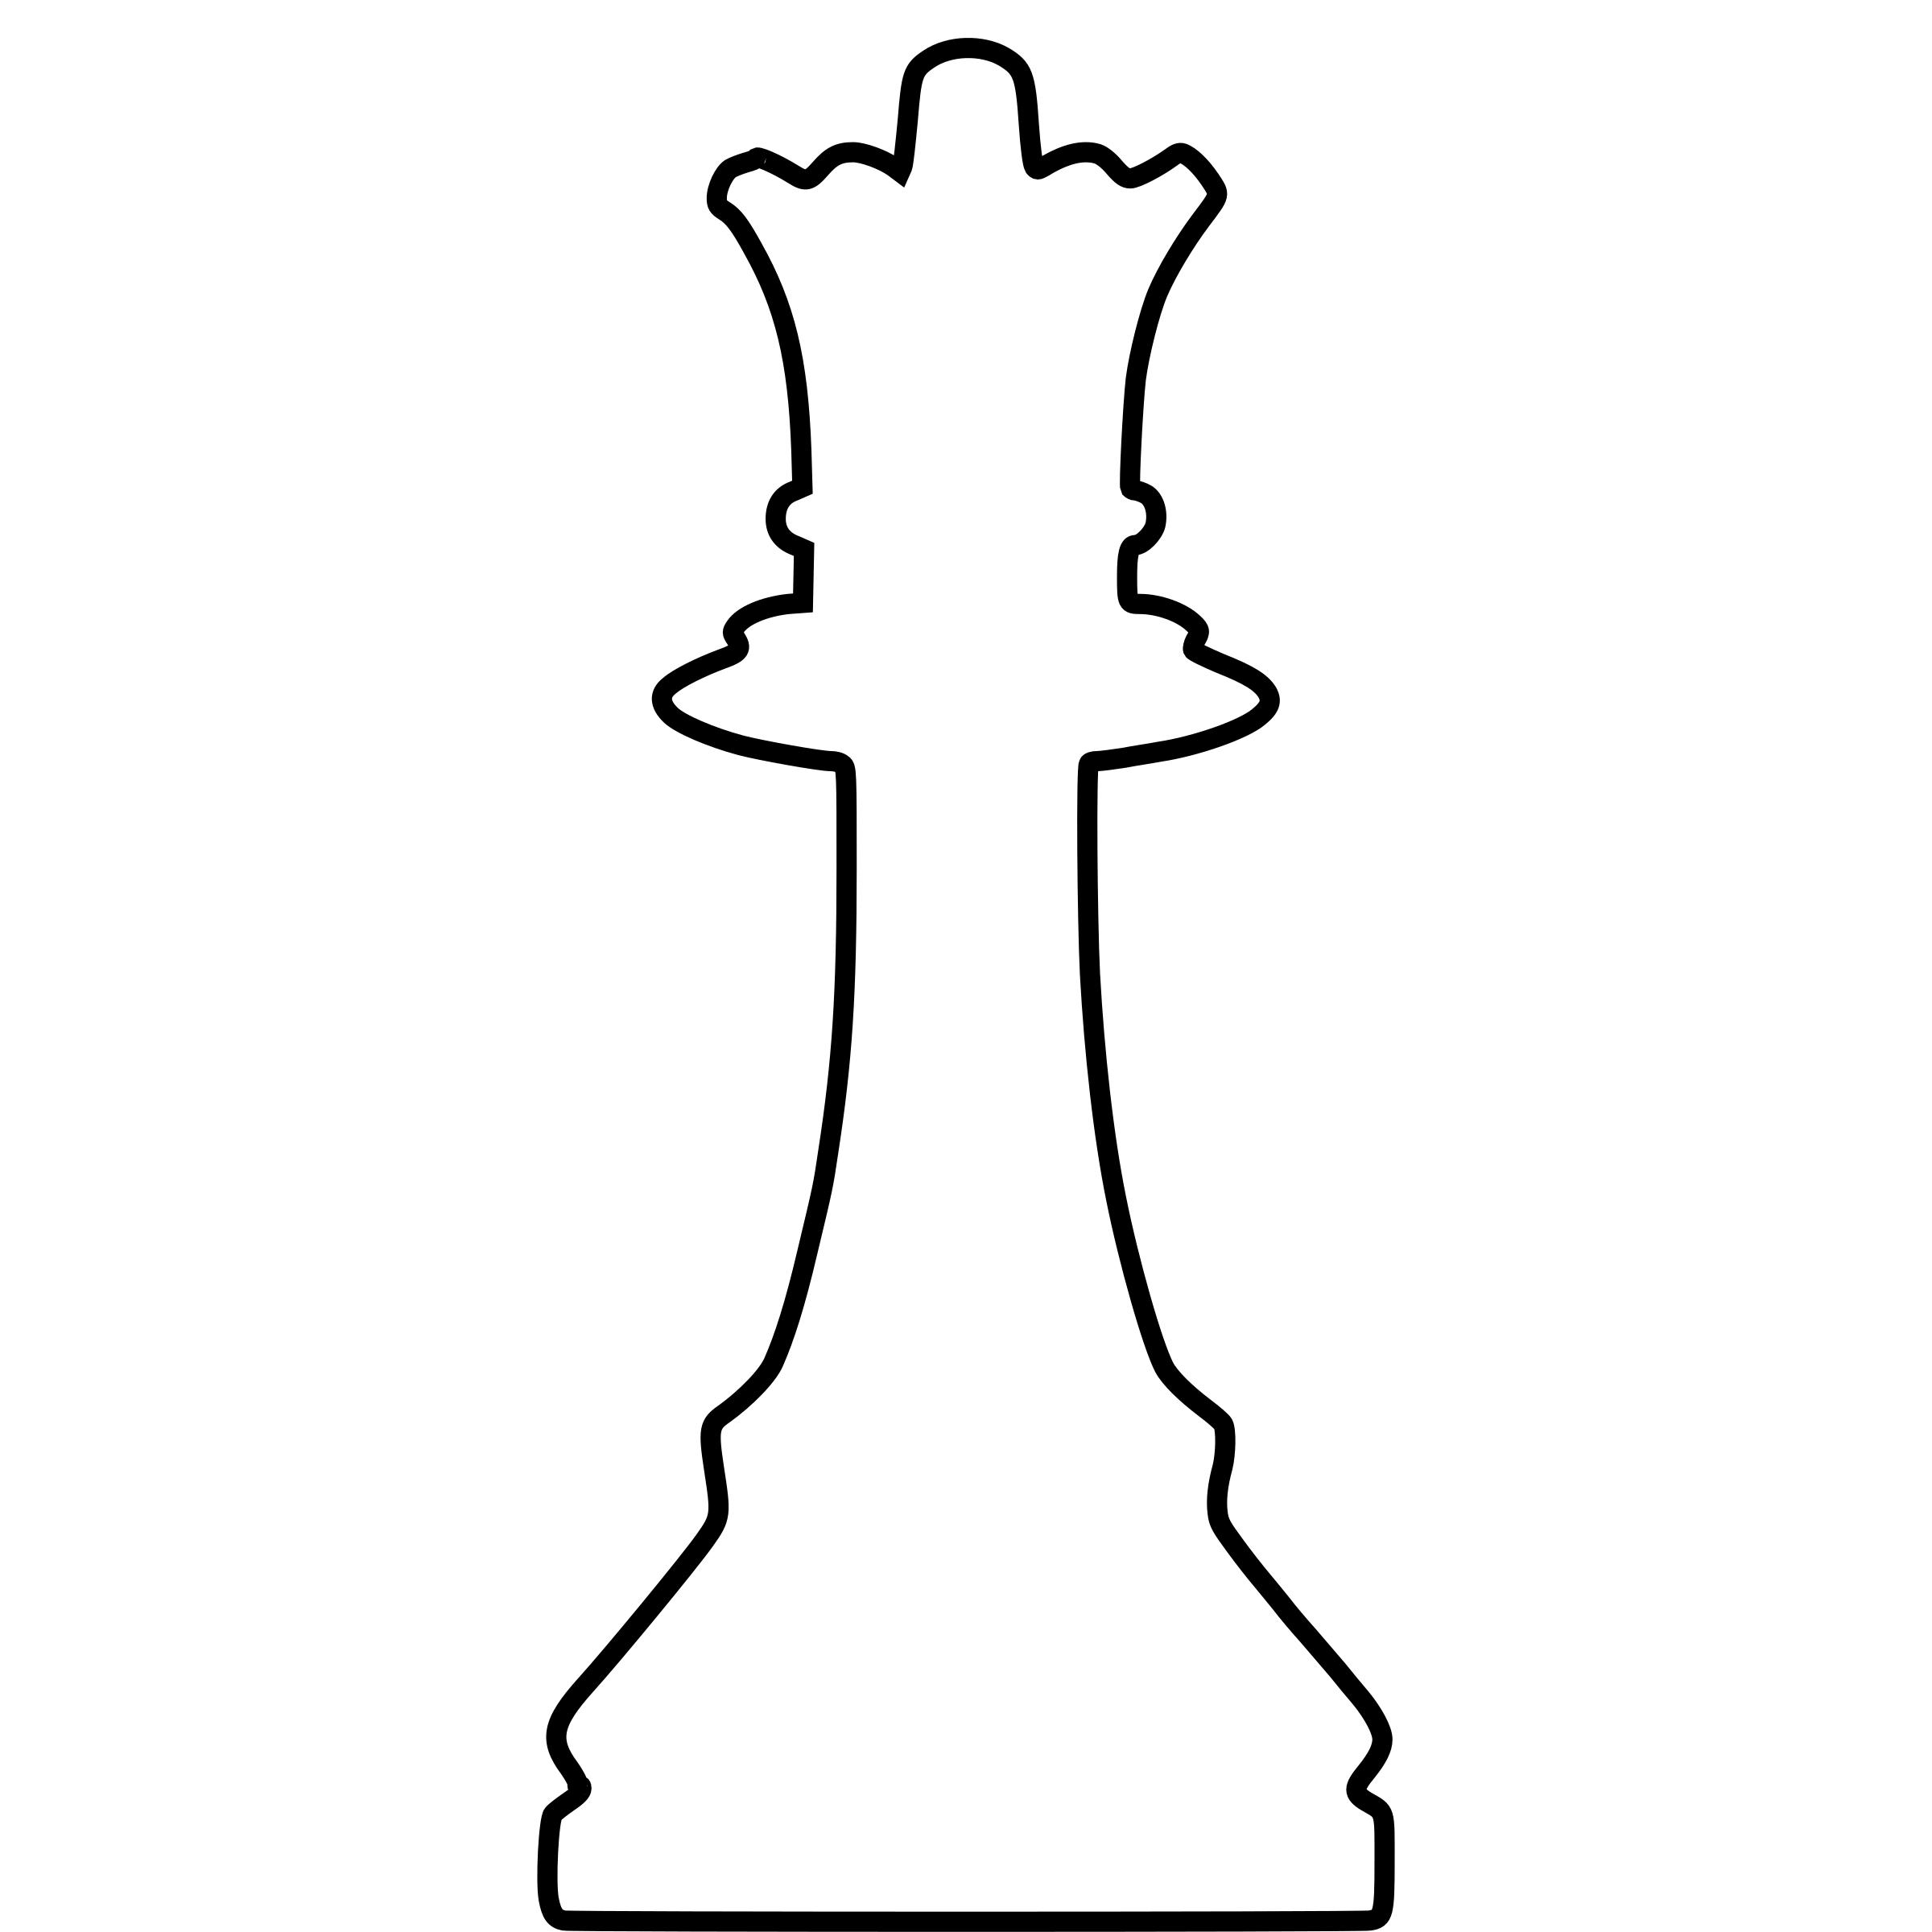 2400x2400 White Silhouette Chess Piece Remix Queen Dama Icons Png